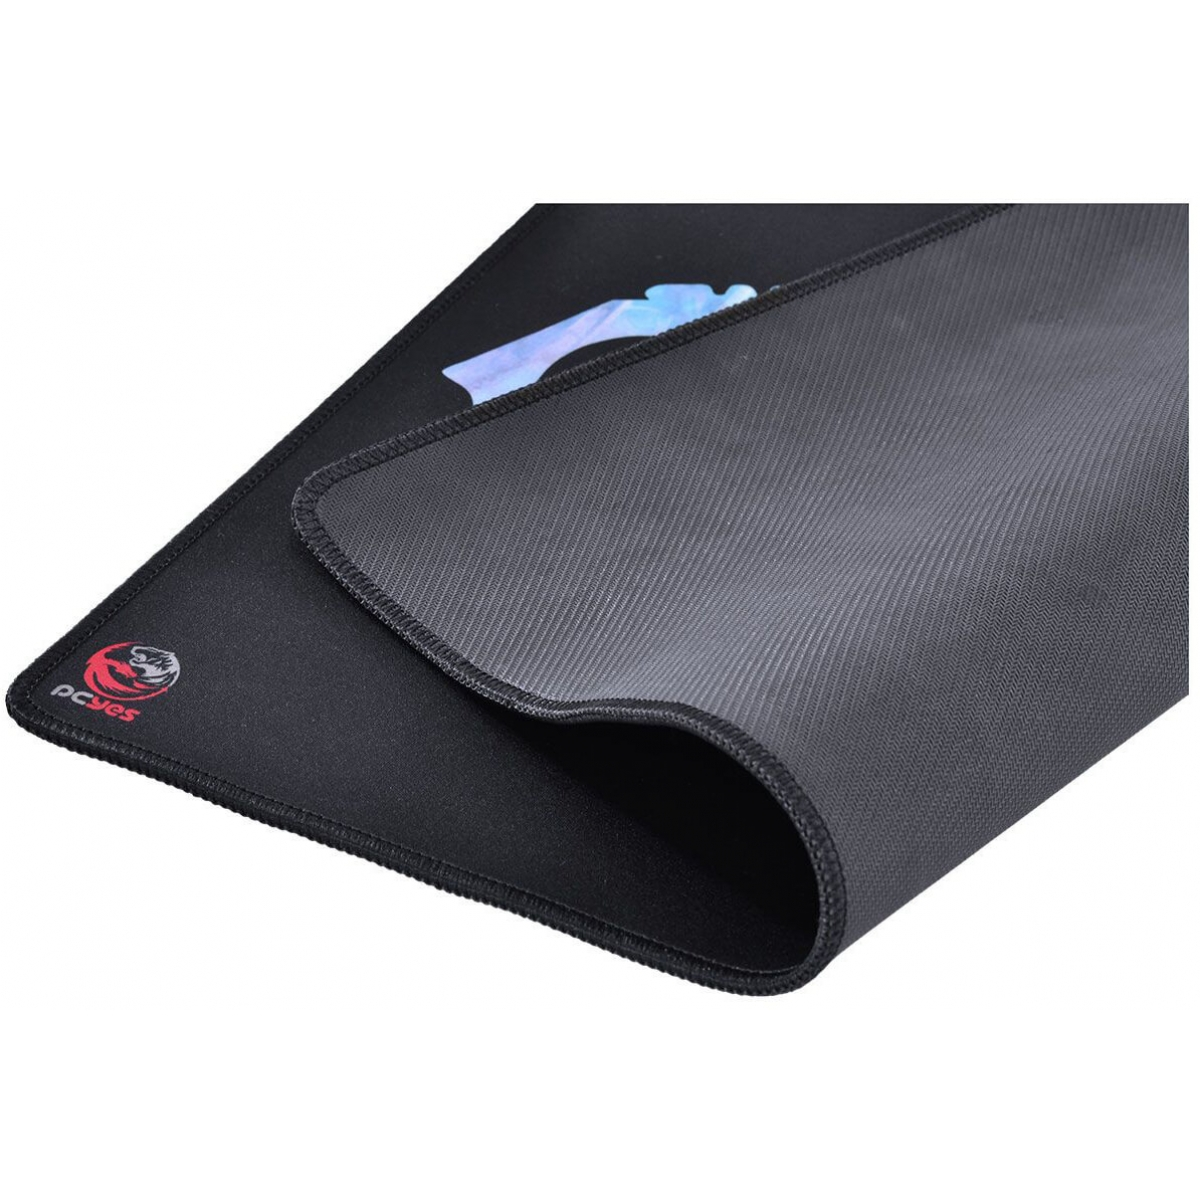 Mouse Pad Gamer PCyes FPS Knife Borda Costurada FK50X40